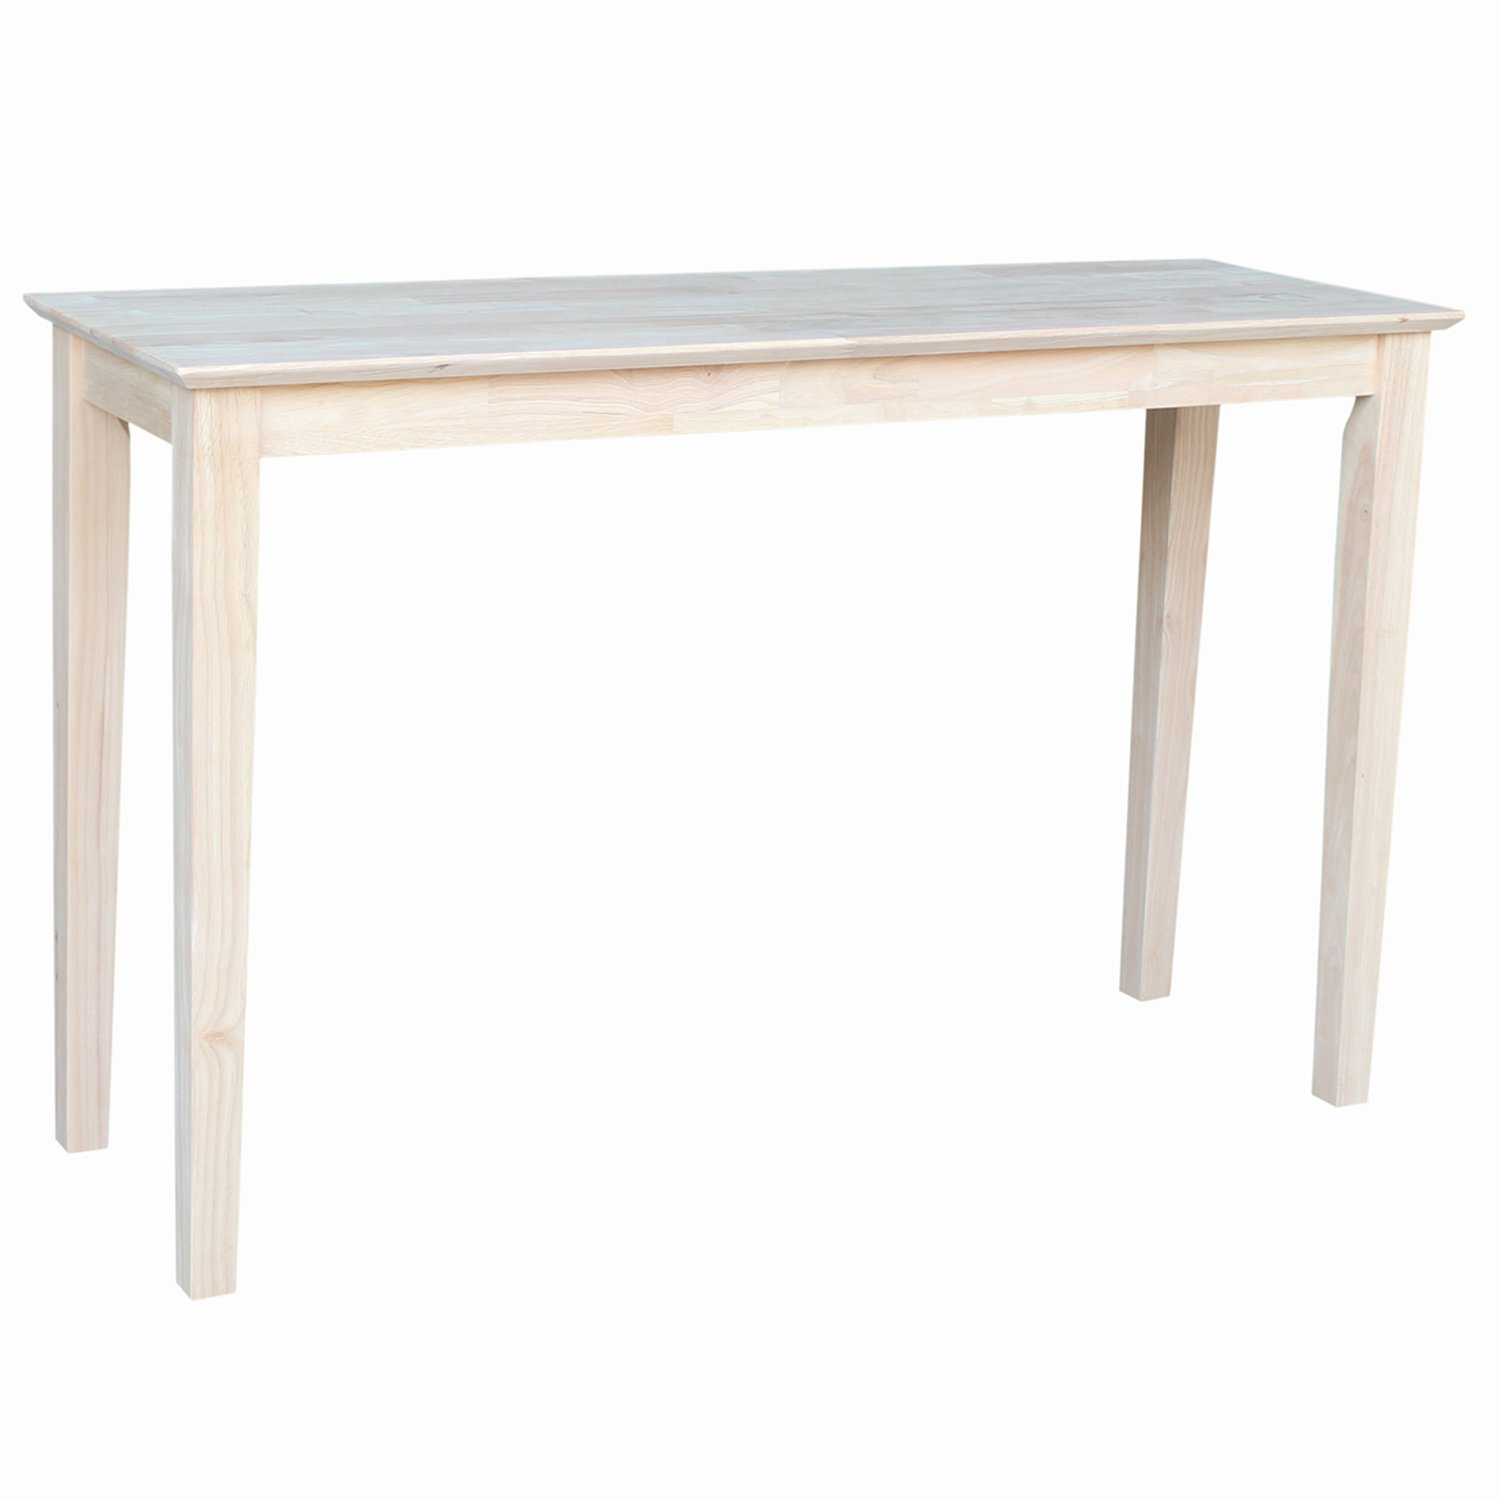 International Concepts OT-9S Shaker Sofa Table, Unfinished